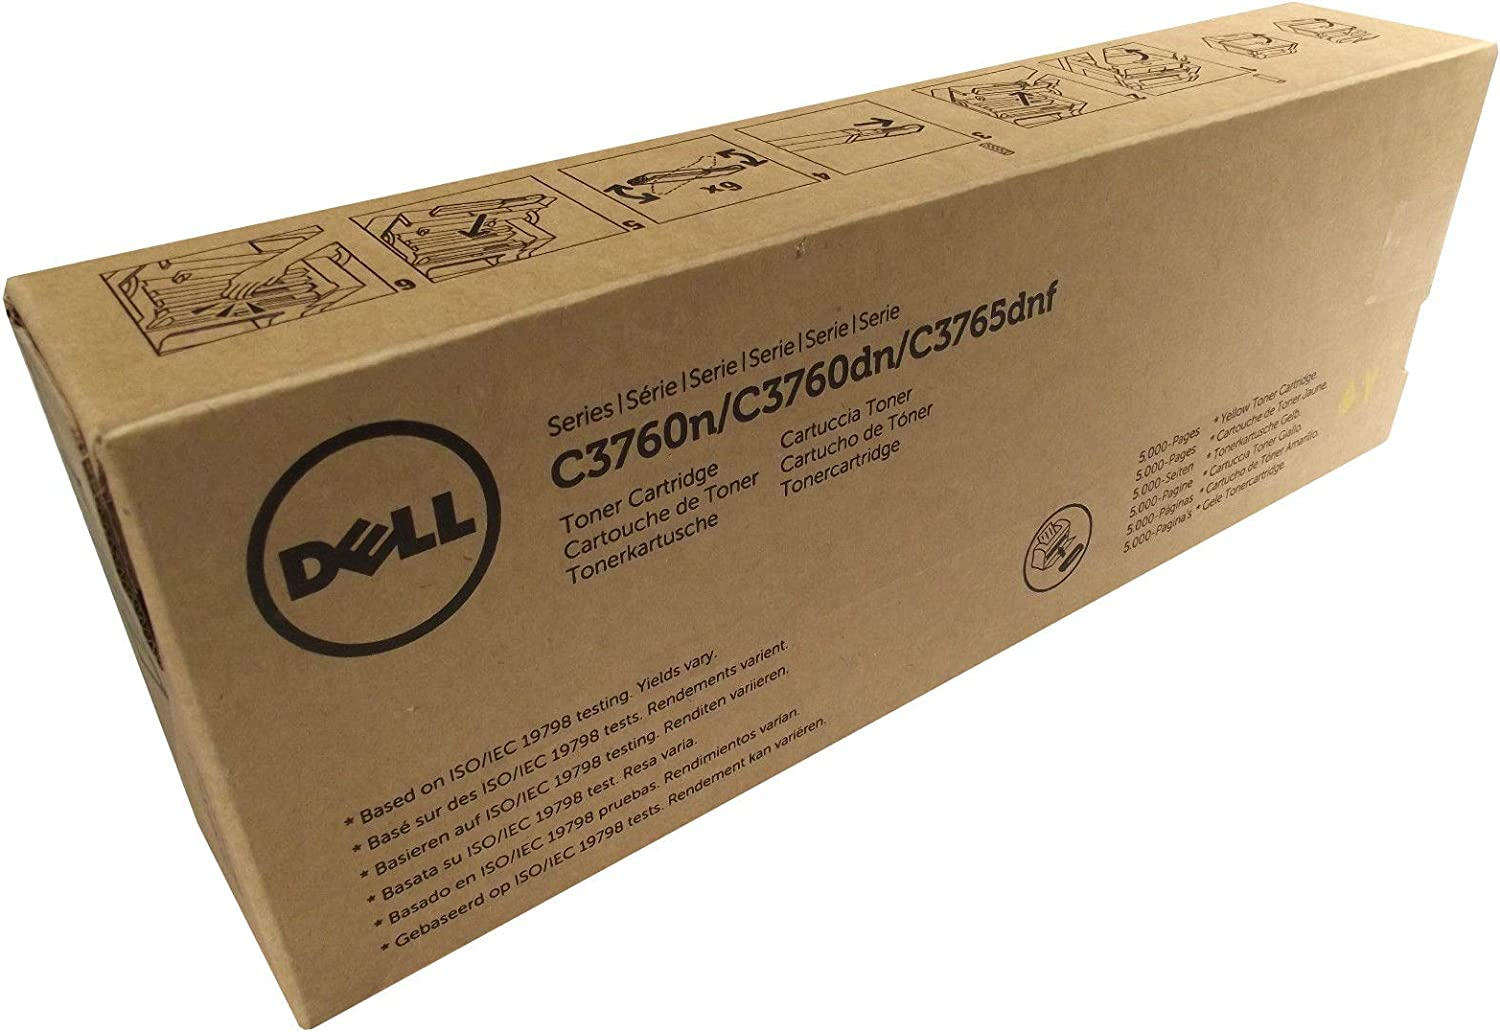 Dell Genuine W8D60 Extra High Yield Black Toner Cartridge for C3760n, C3760dn, C3765dnf Printers